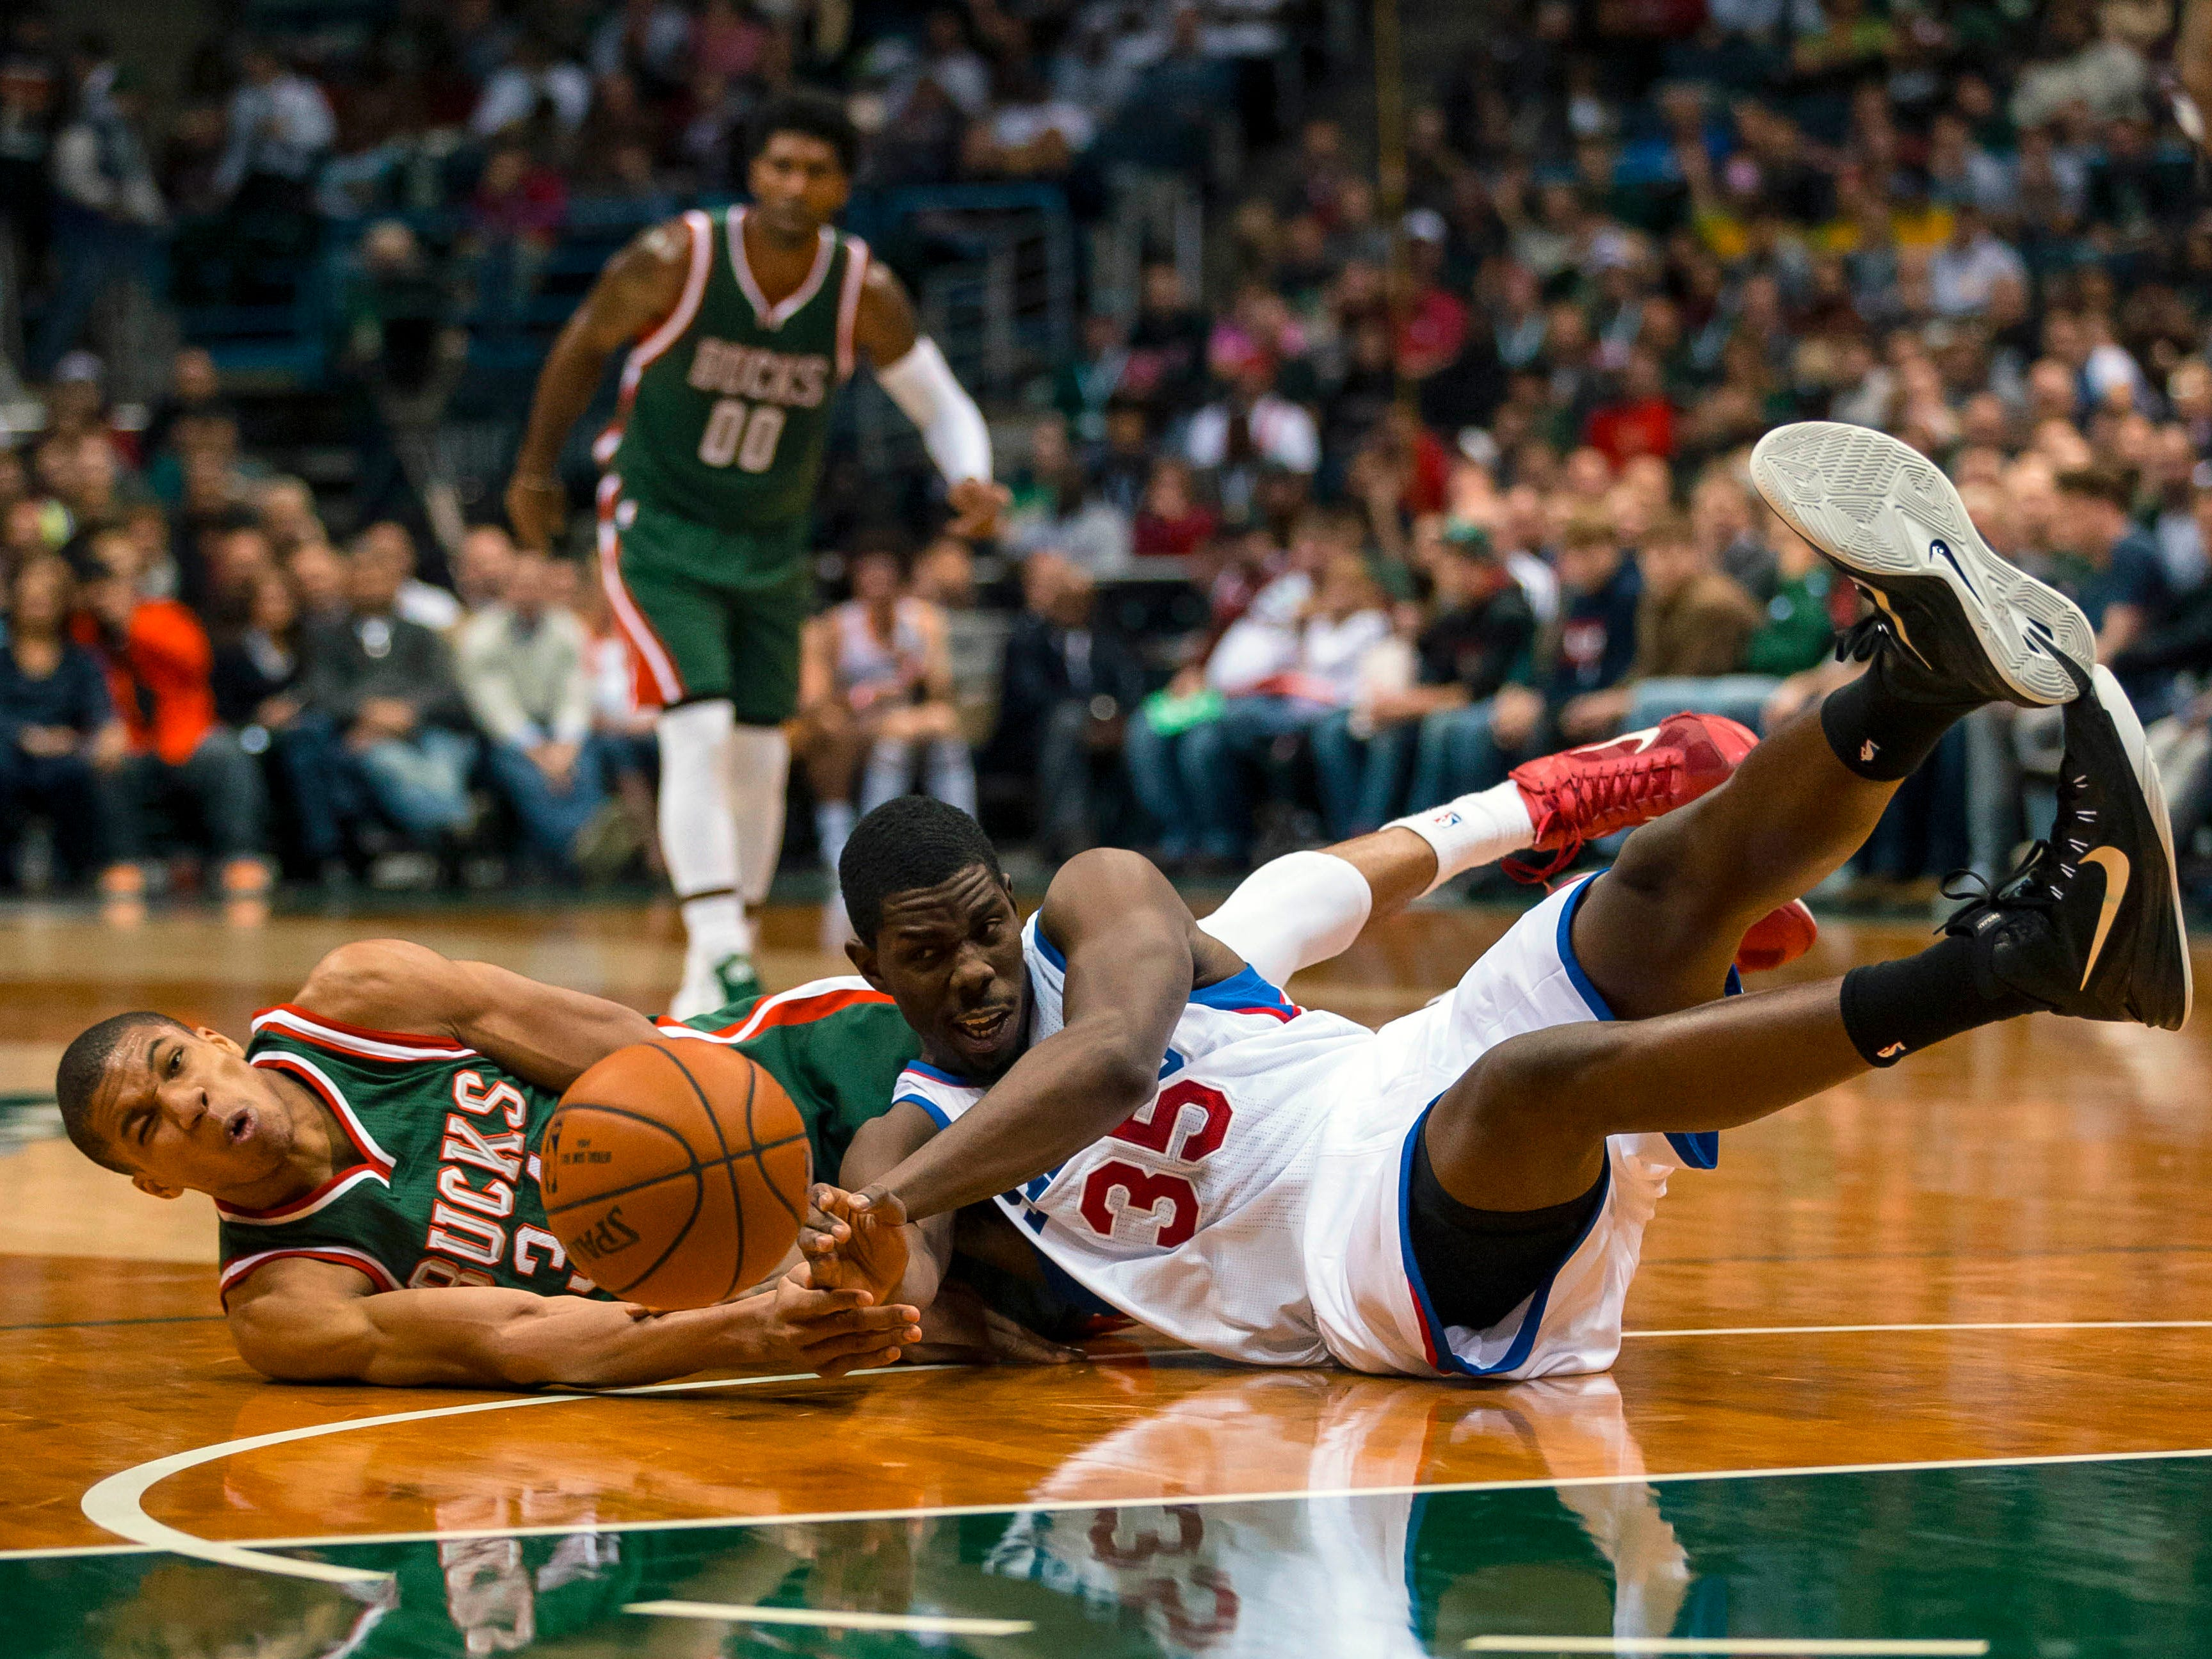 Antetokounmpo battles for a loose ball during a 2014 game against Philadelphia.